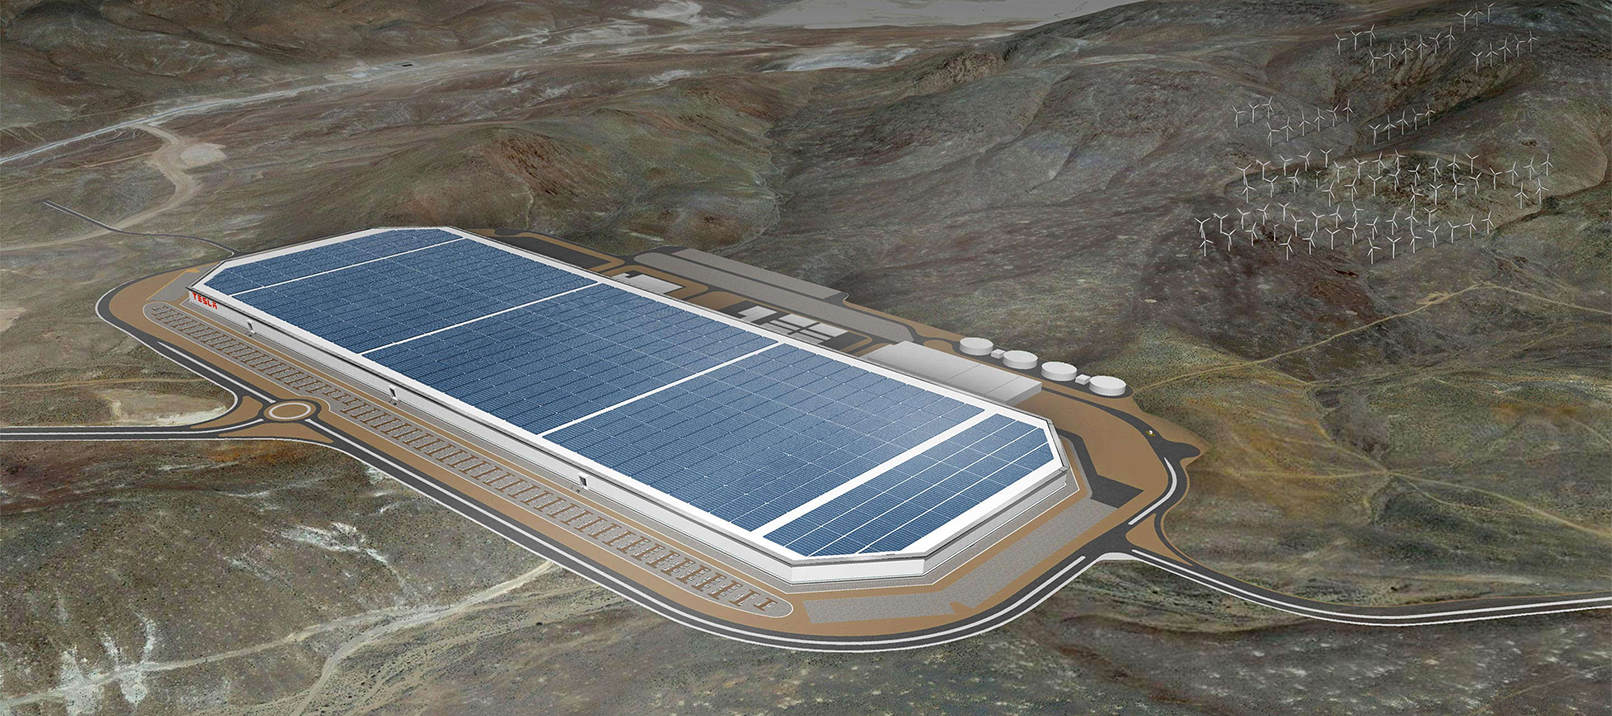 Tesla Plans to Build at Least 3 New Gigafactories